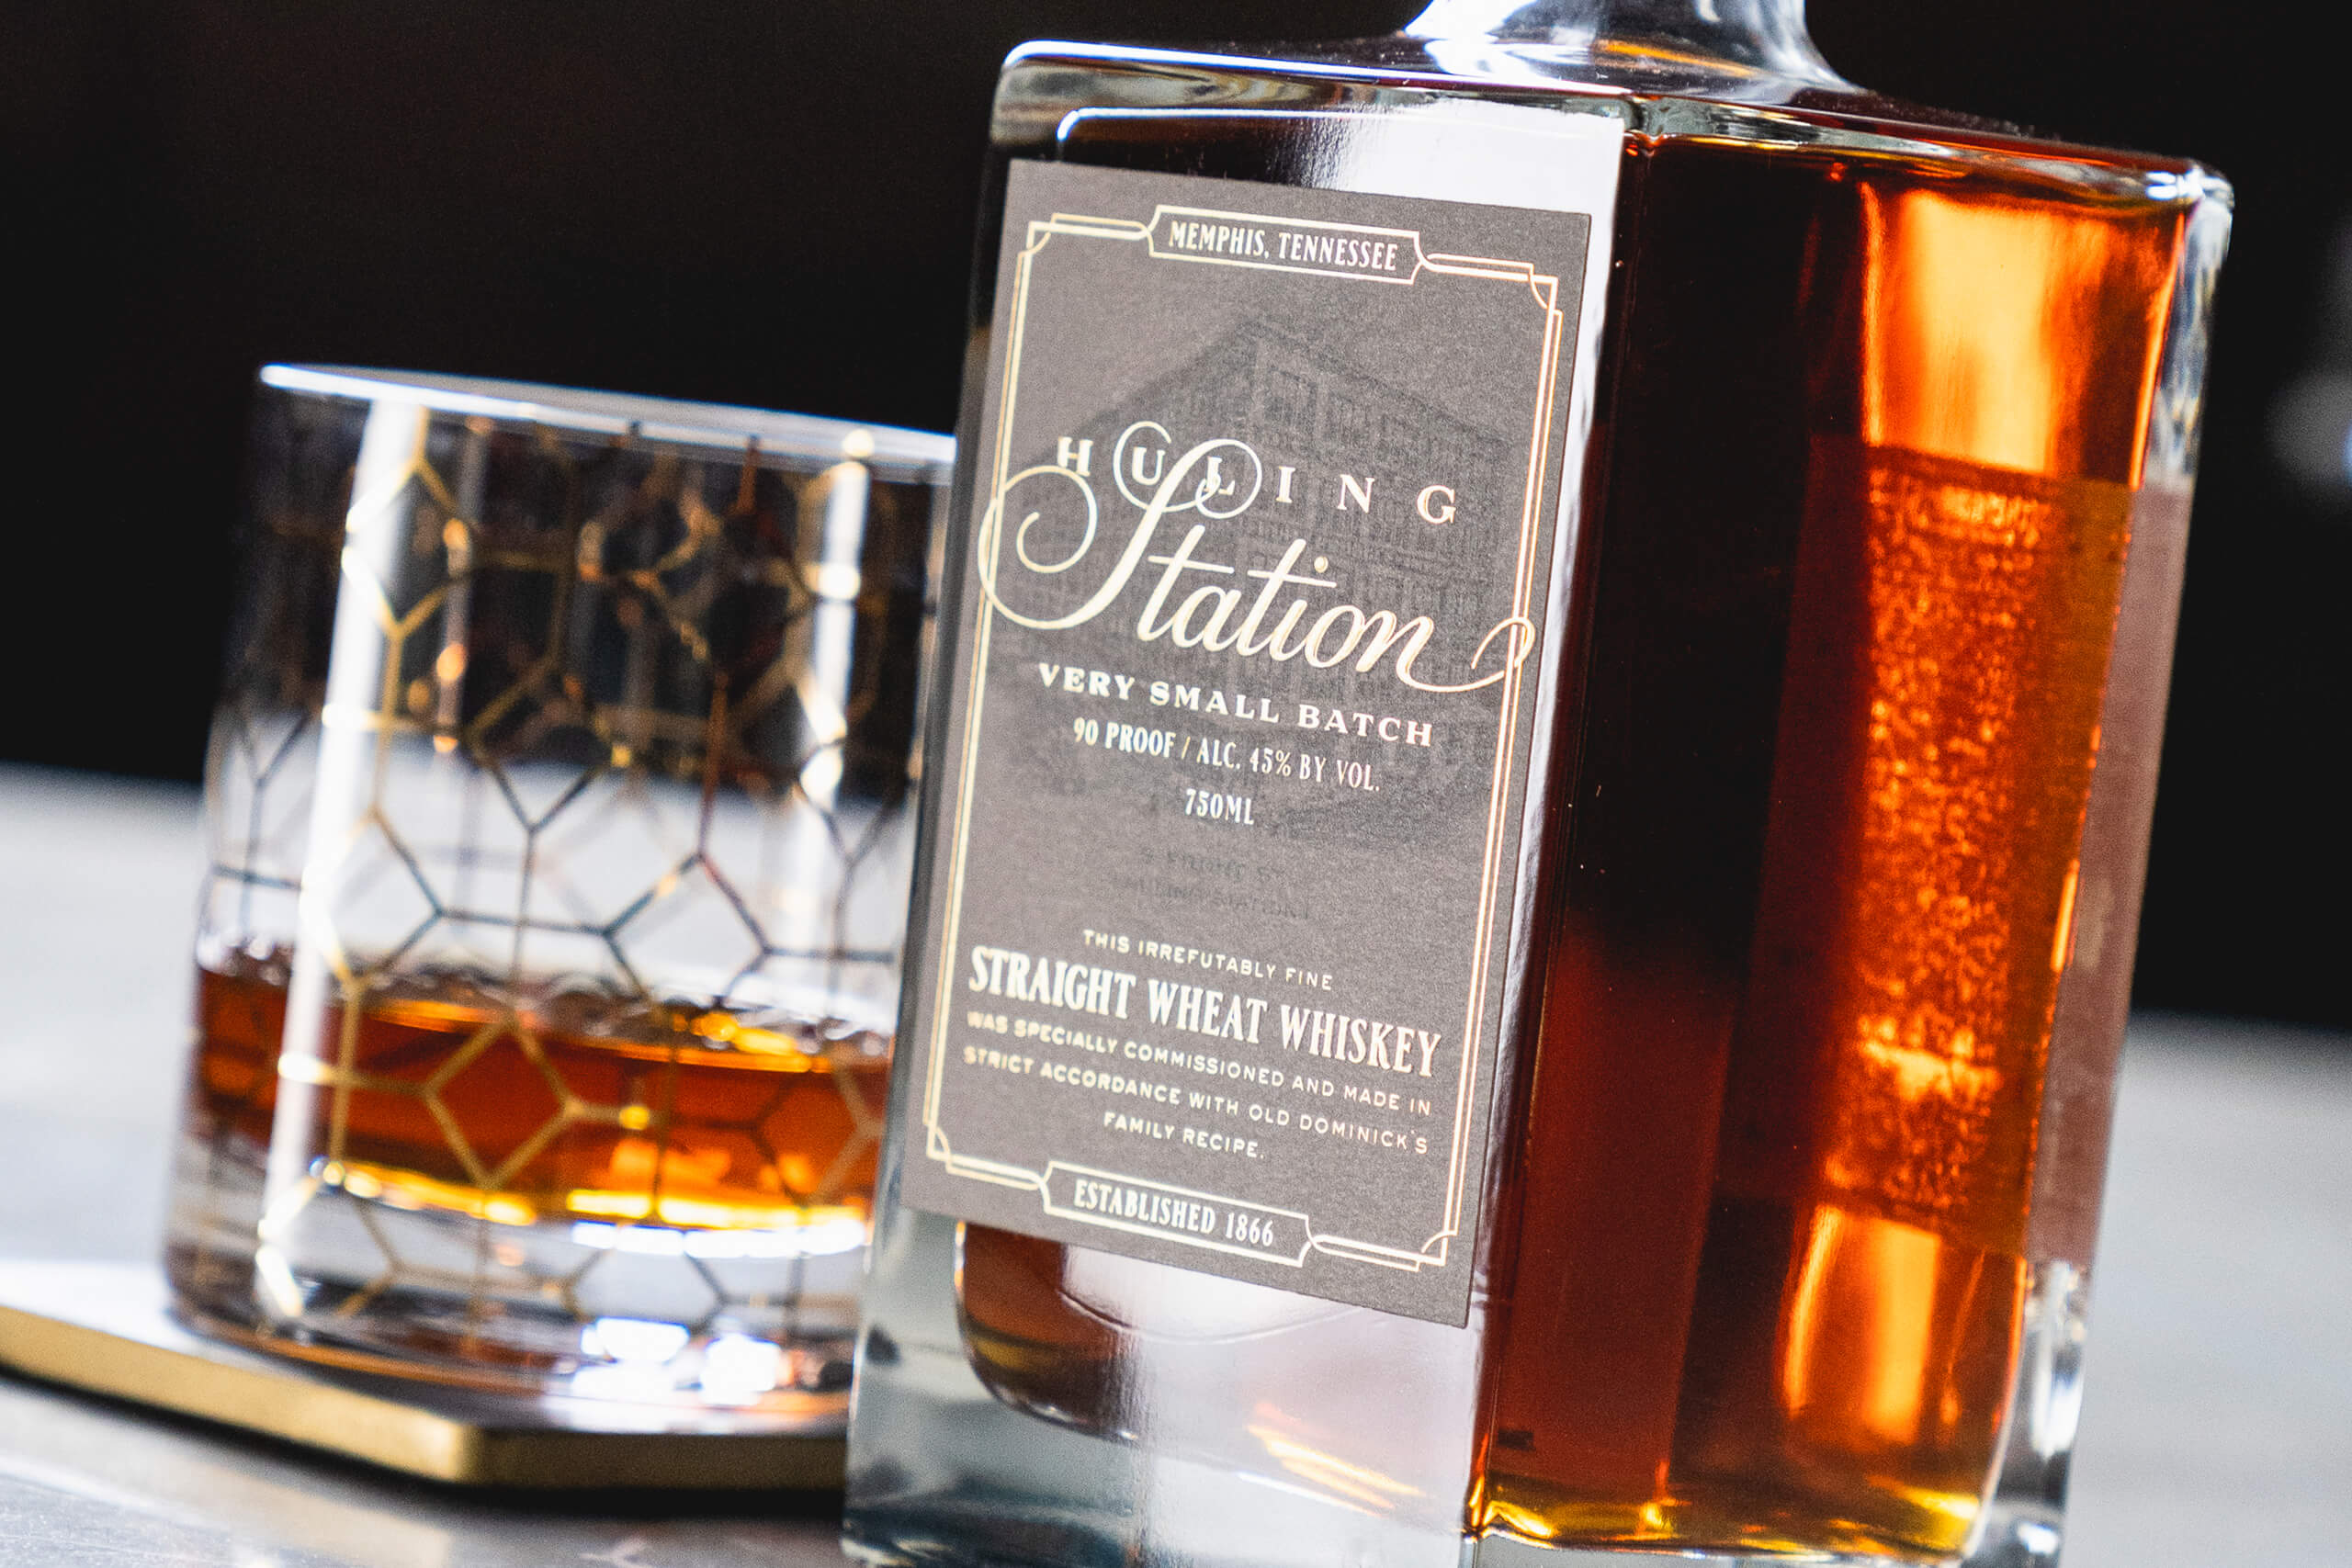 Huling Station Wheat Whiskey and a gold-trimmed glass of whiskey